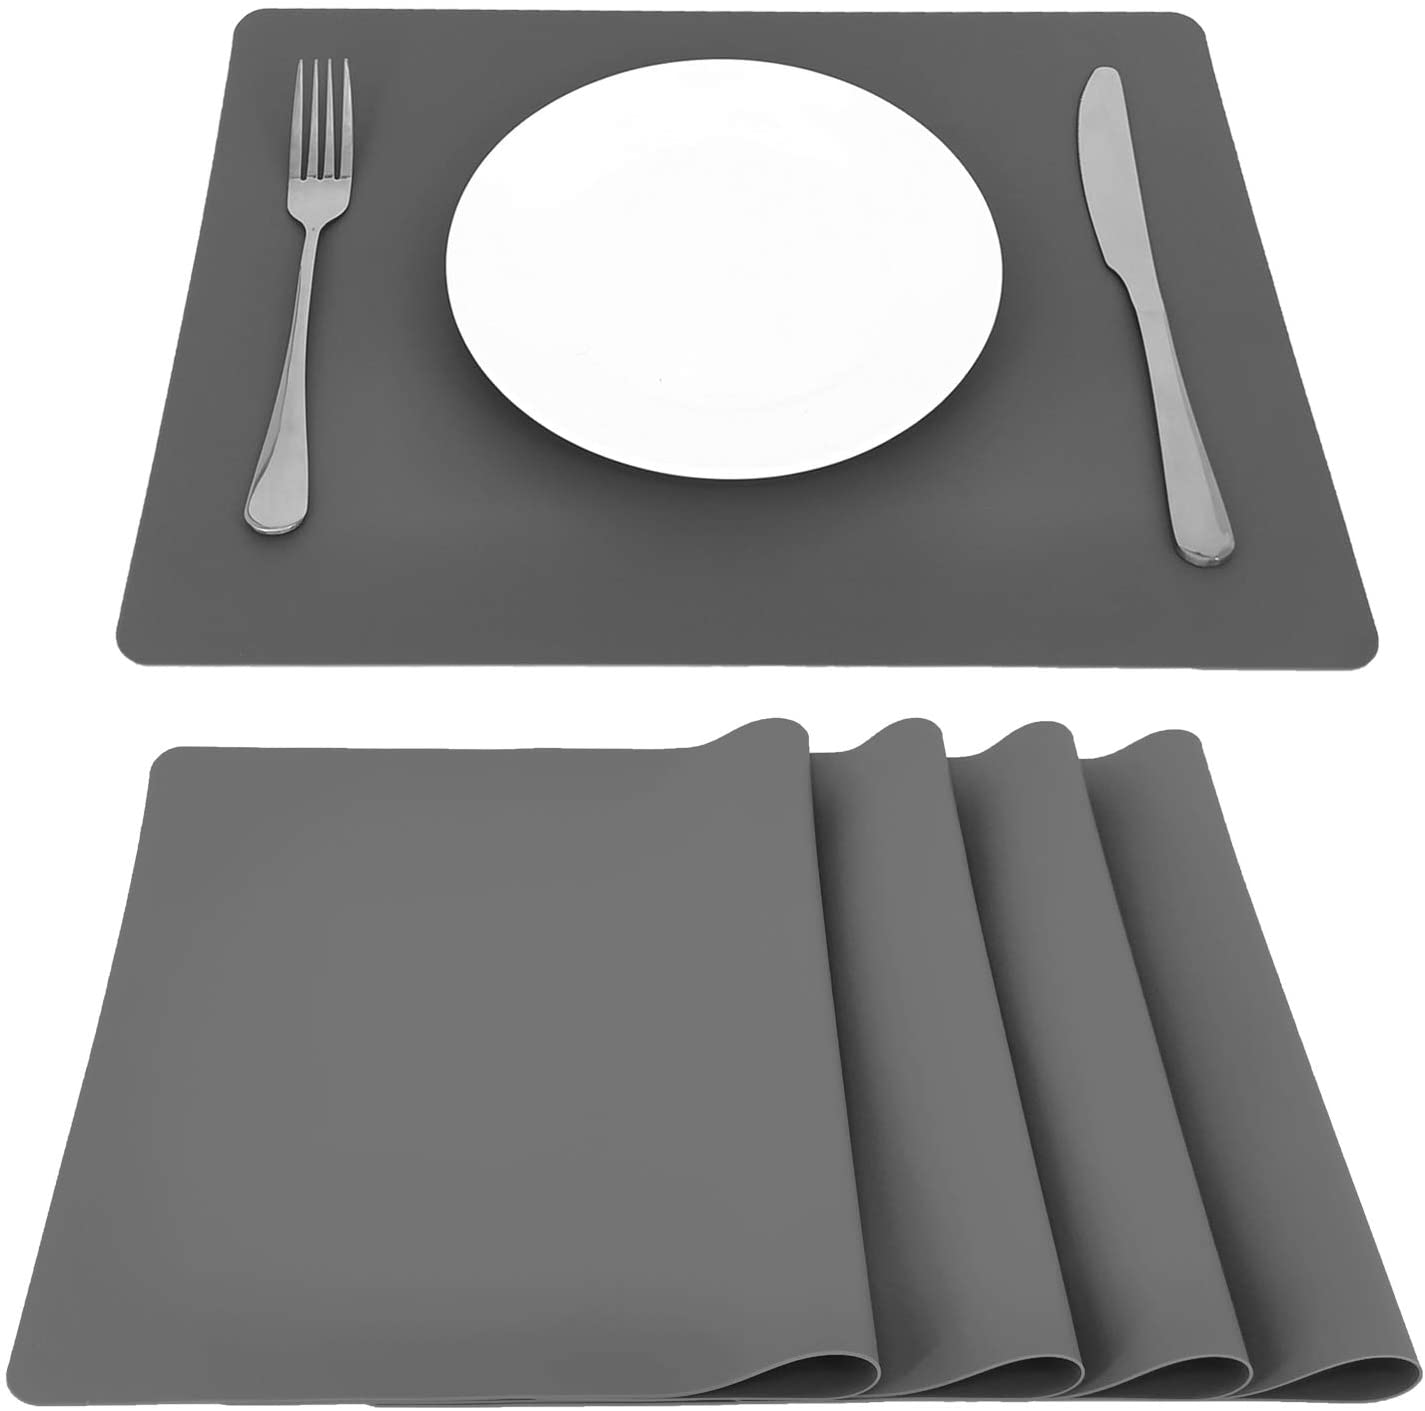 Onlyer Gray Silicone Placemats, Set of 4 Waterproof Non-Slip Kitchen Table Mat Set for Dining Table, 15.75 x11.81 Inches Heat Resistant Insulation Countertop Protector Pads, Easy to Clean